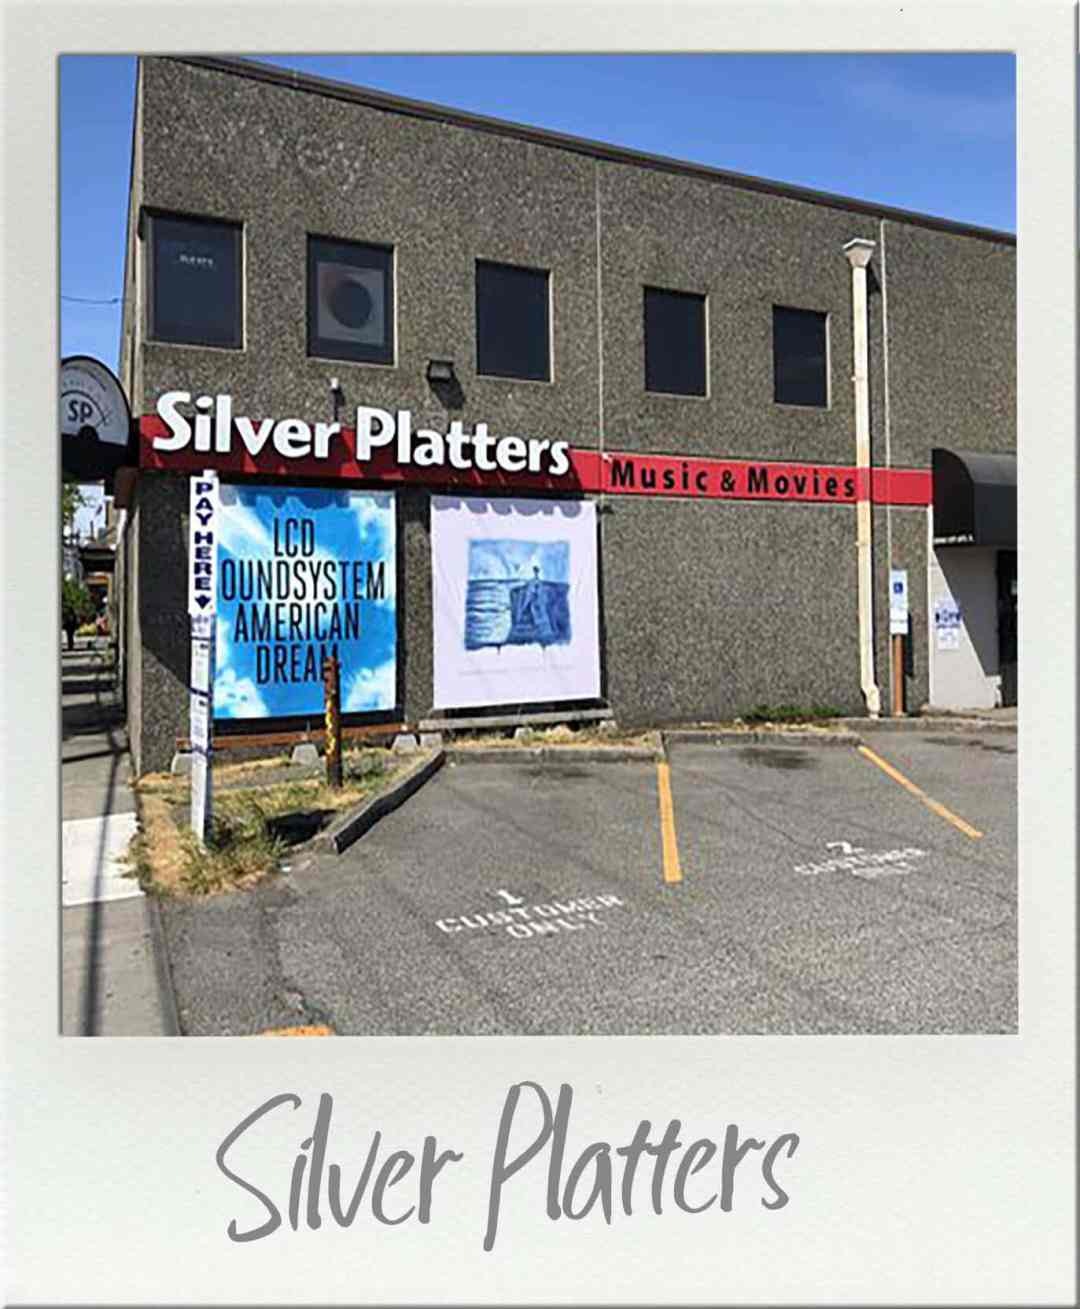 Silver Platters CD Store in SODO